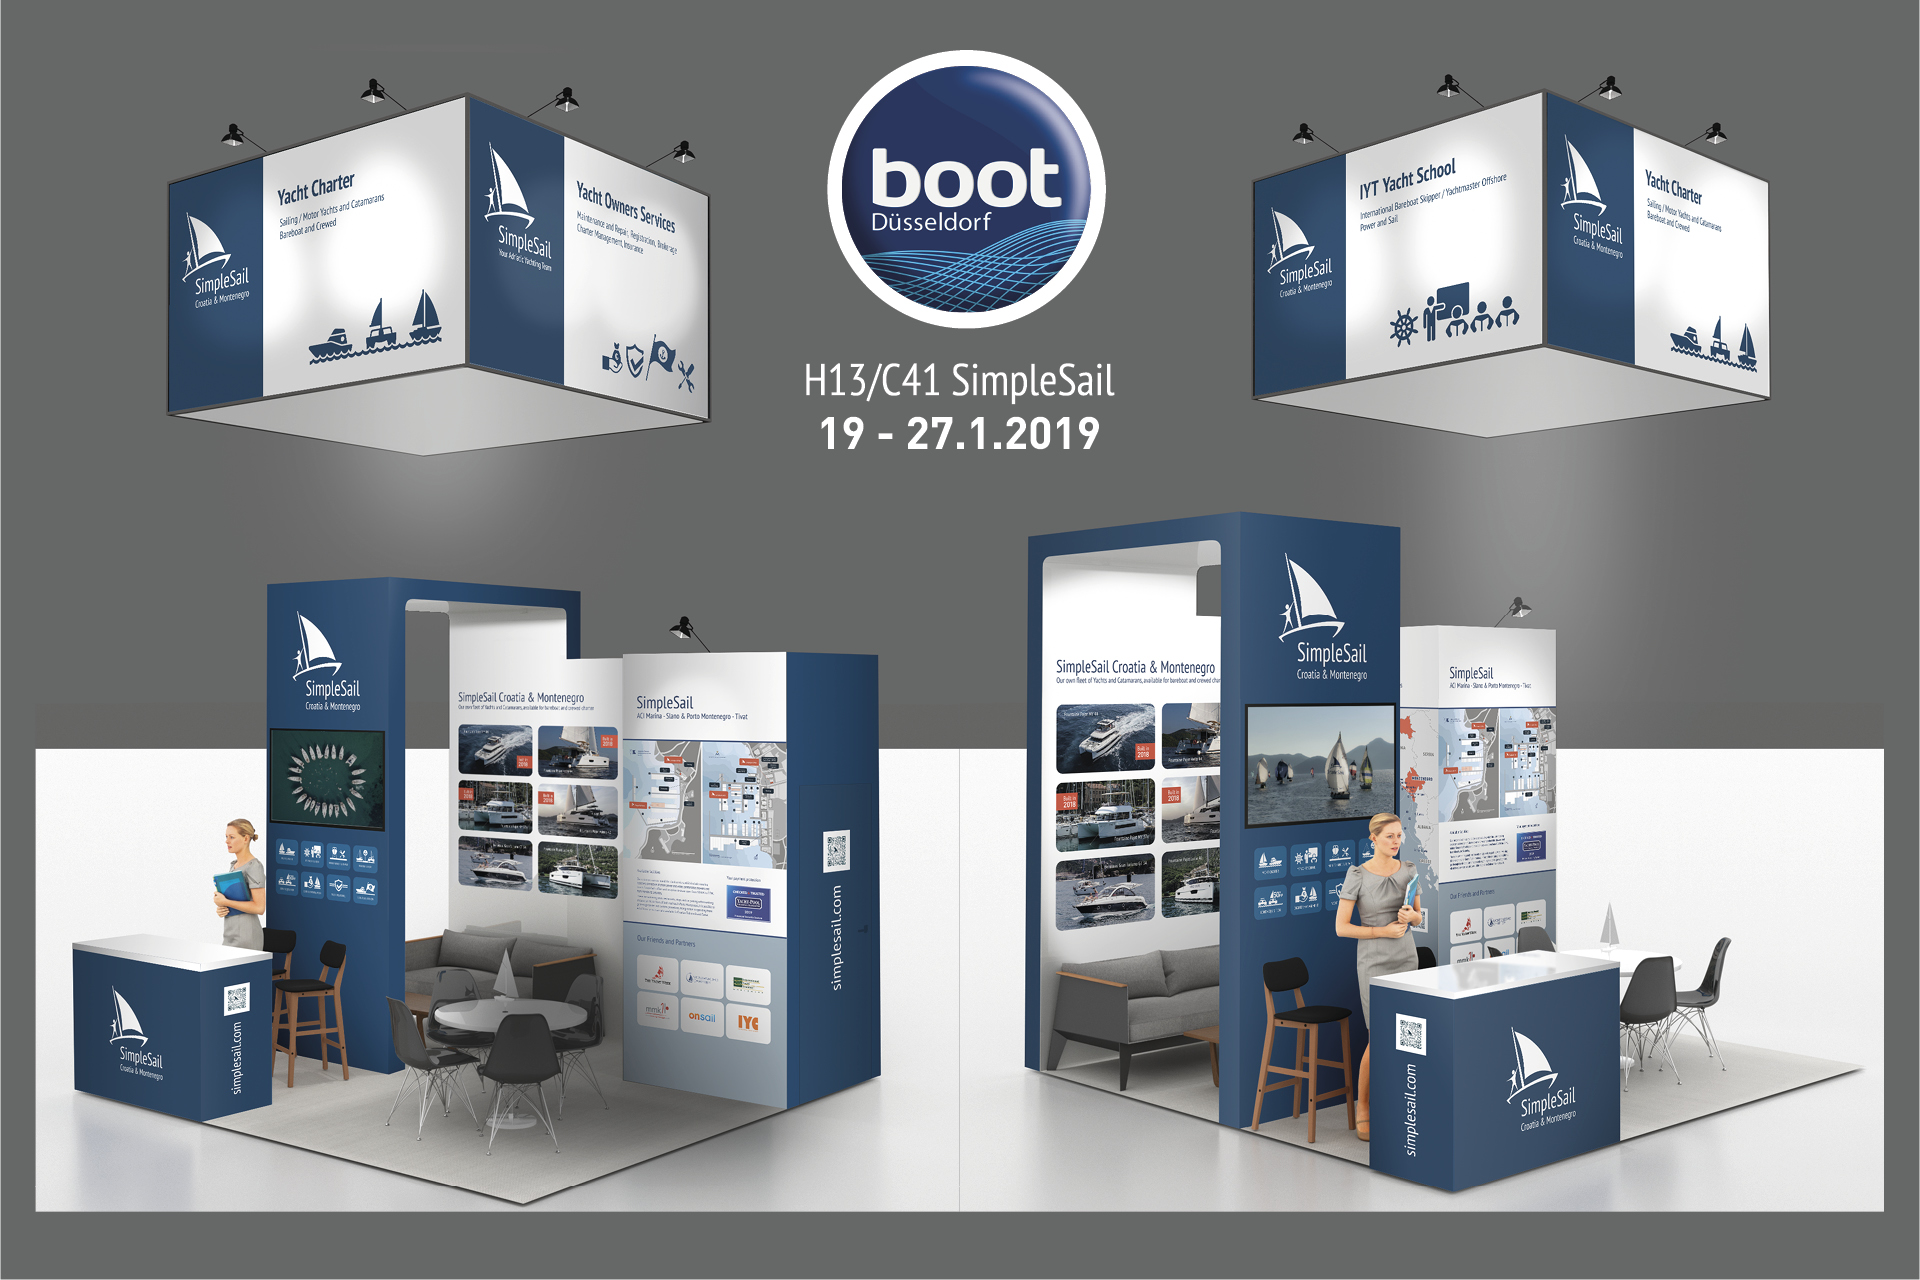 SimpleSail stand on BOOT Dusseldorf 2019